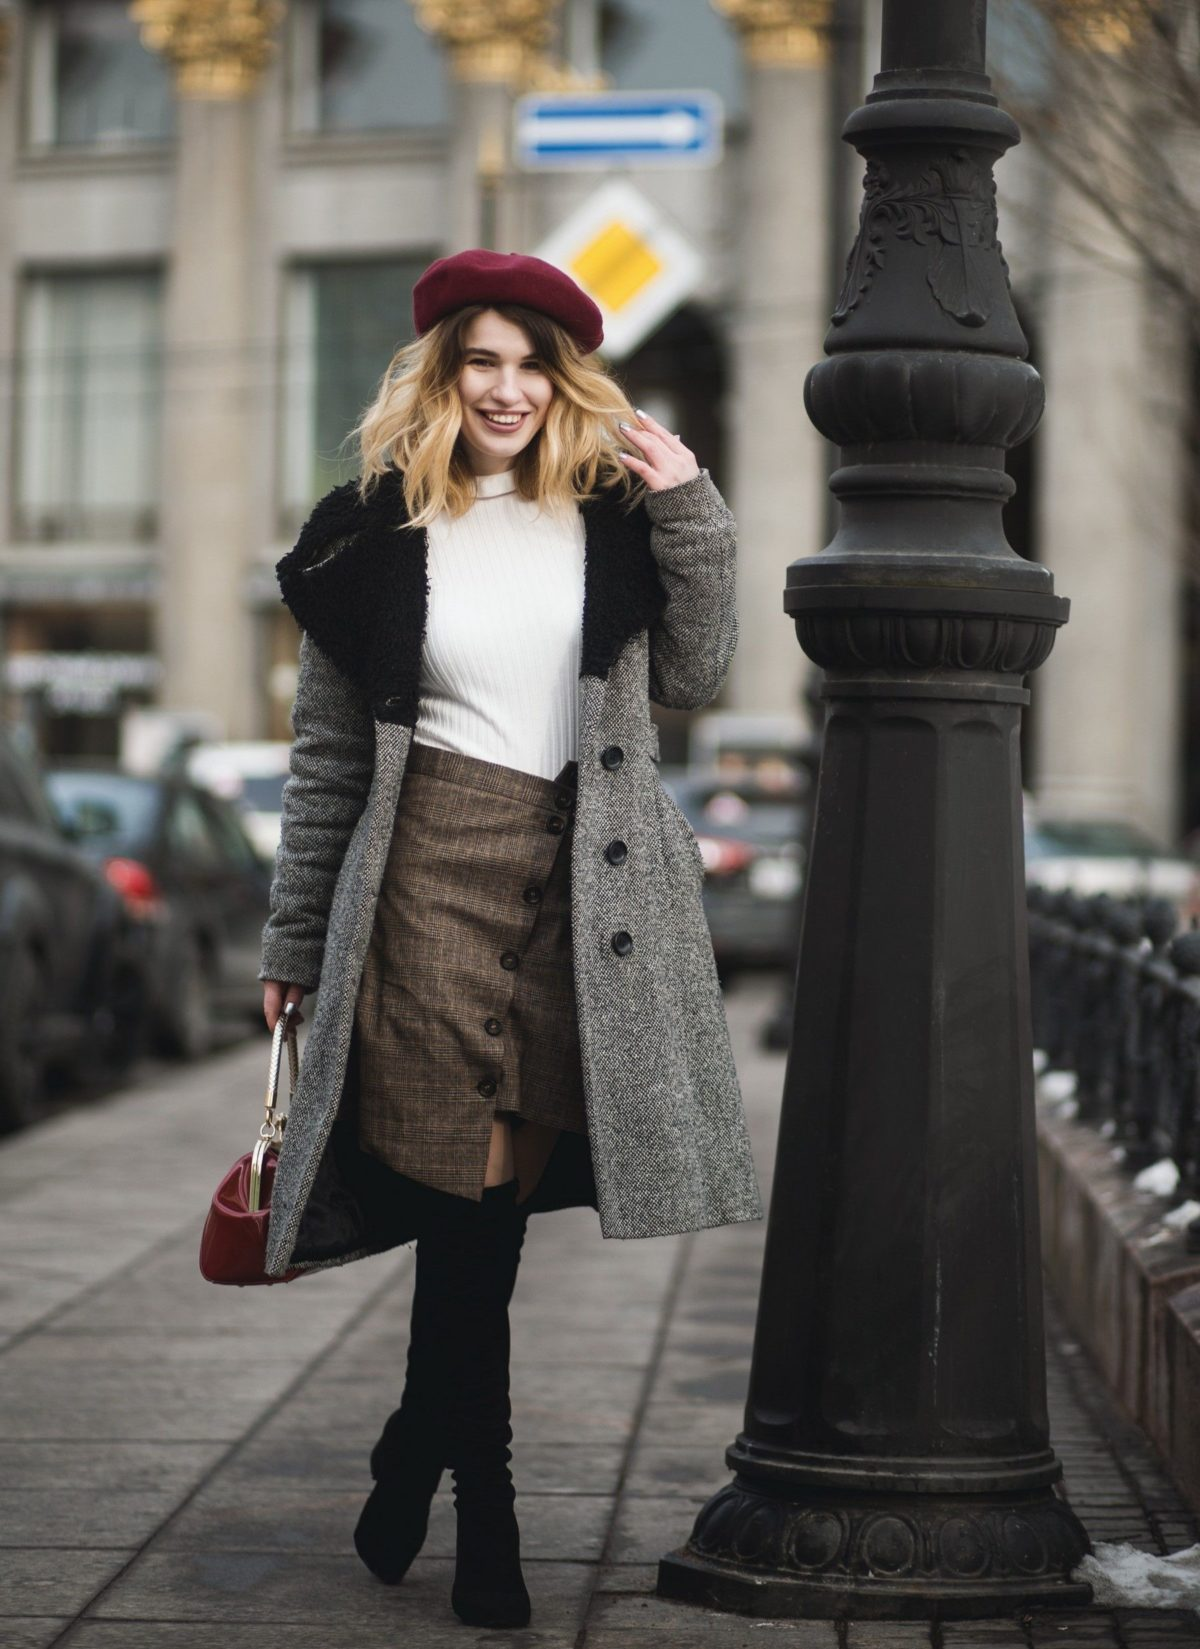 how to wear over the knee boots appropriate for work